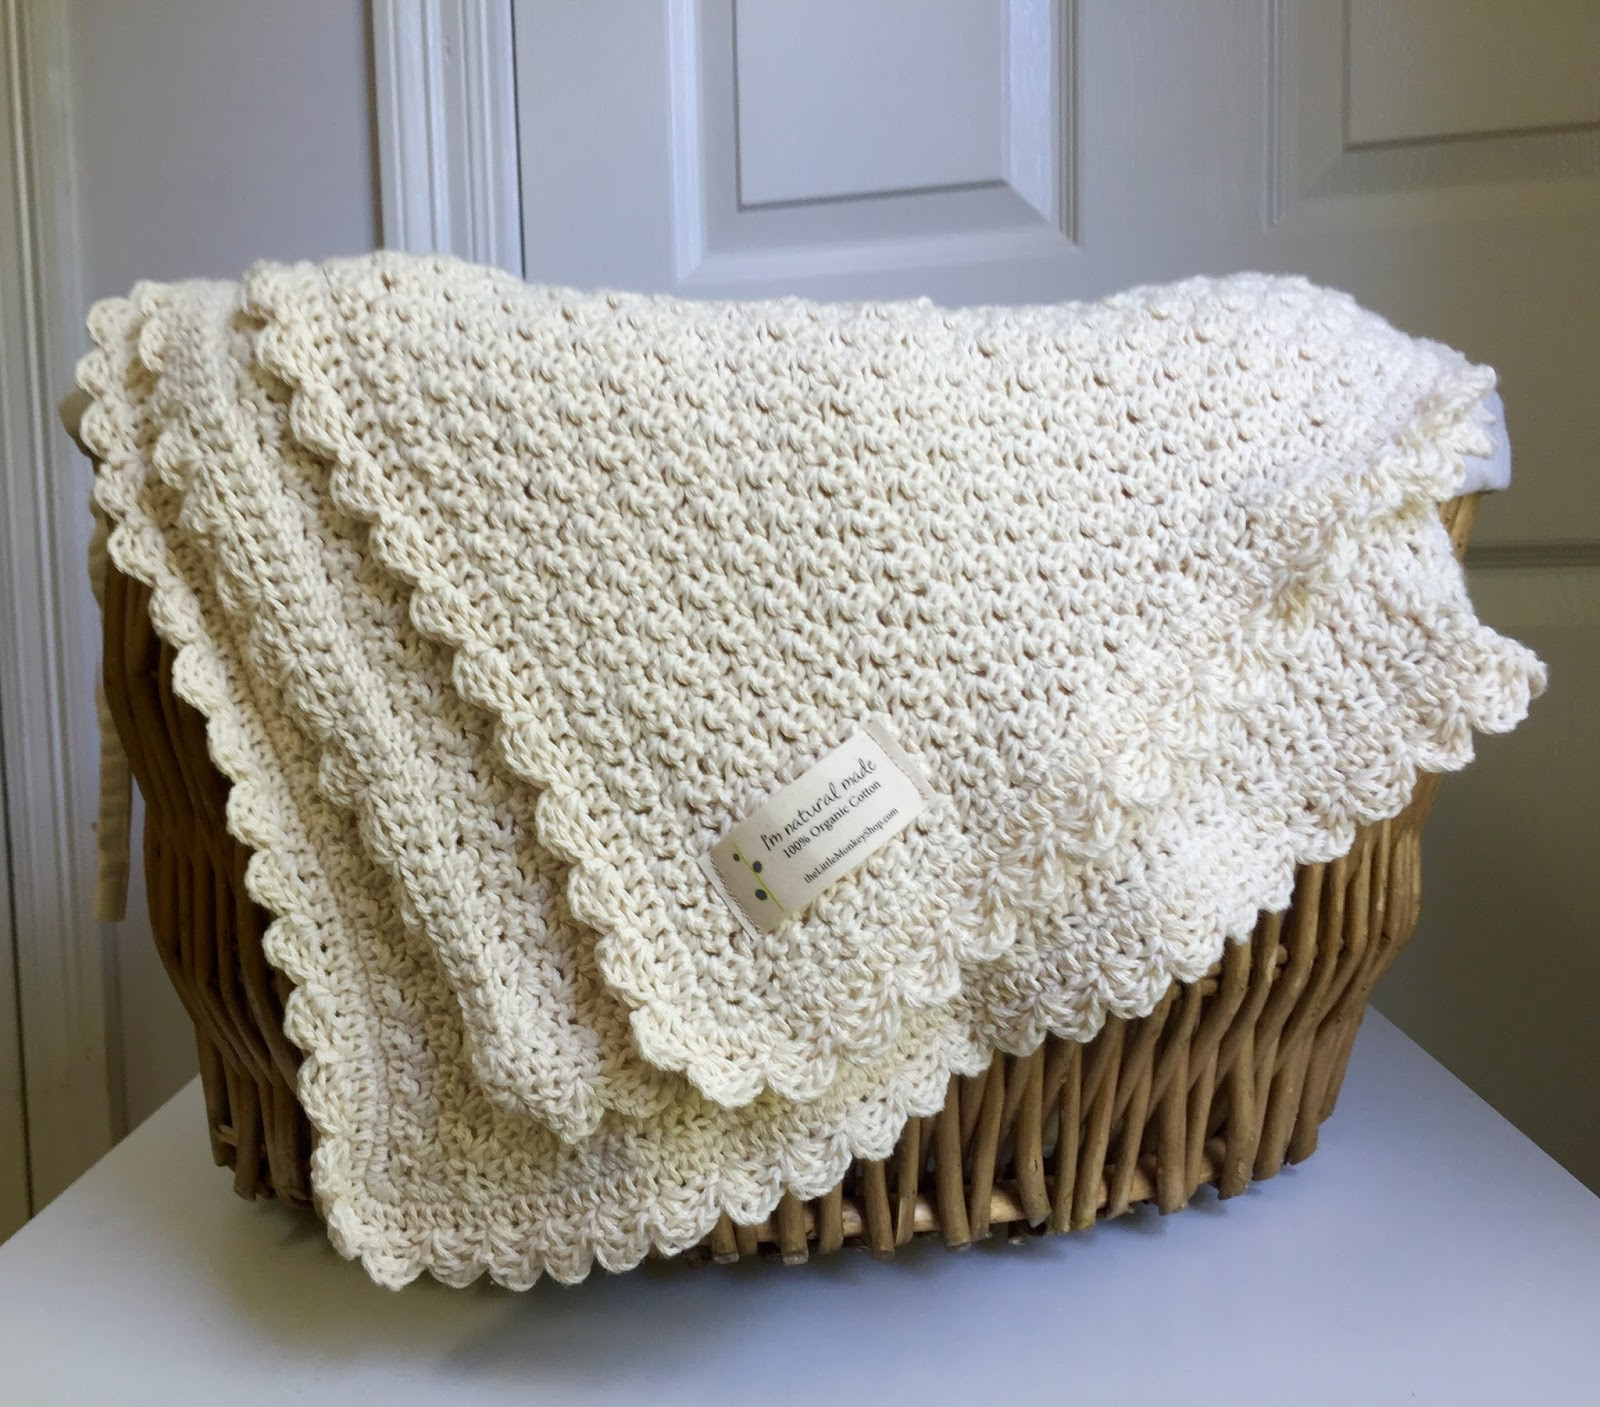 Crochet Blanket Designs New Pure and Simple Baby Blanket A Simply Beautiful Crochet Of Incredible 42 Photos Crochet Blanket Designs